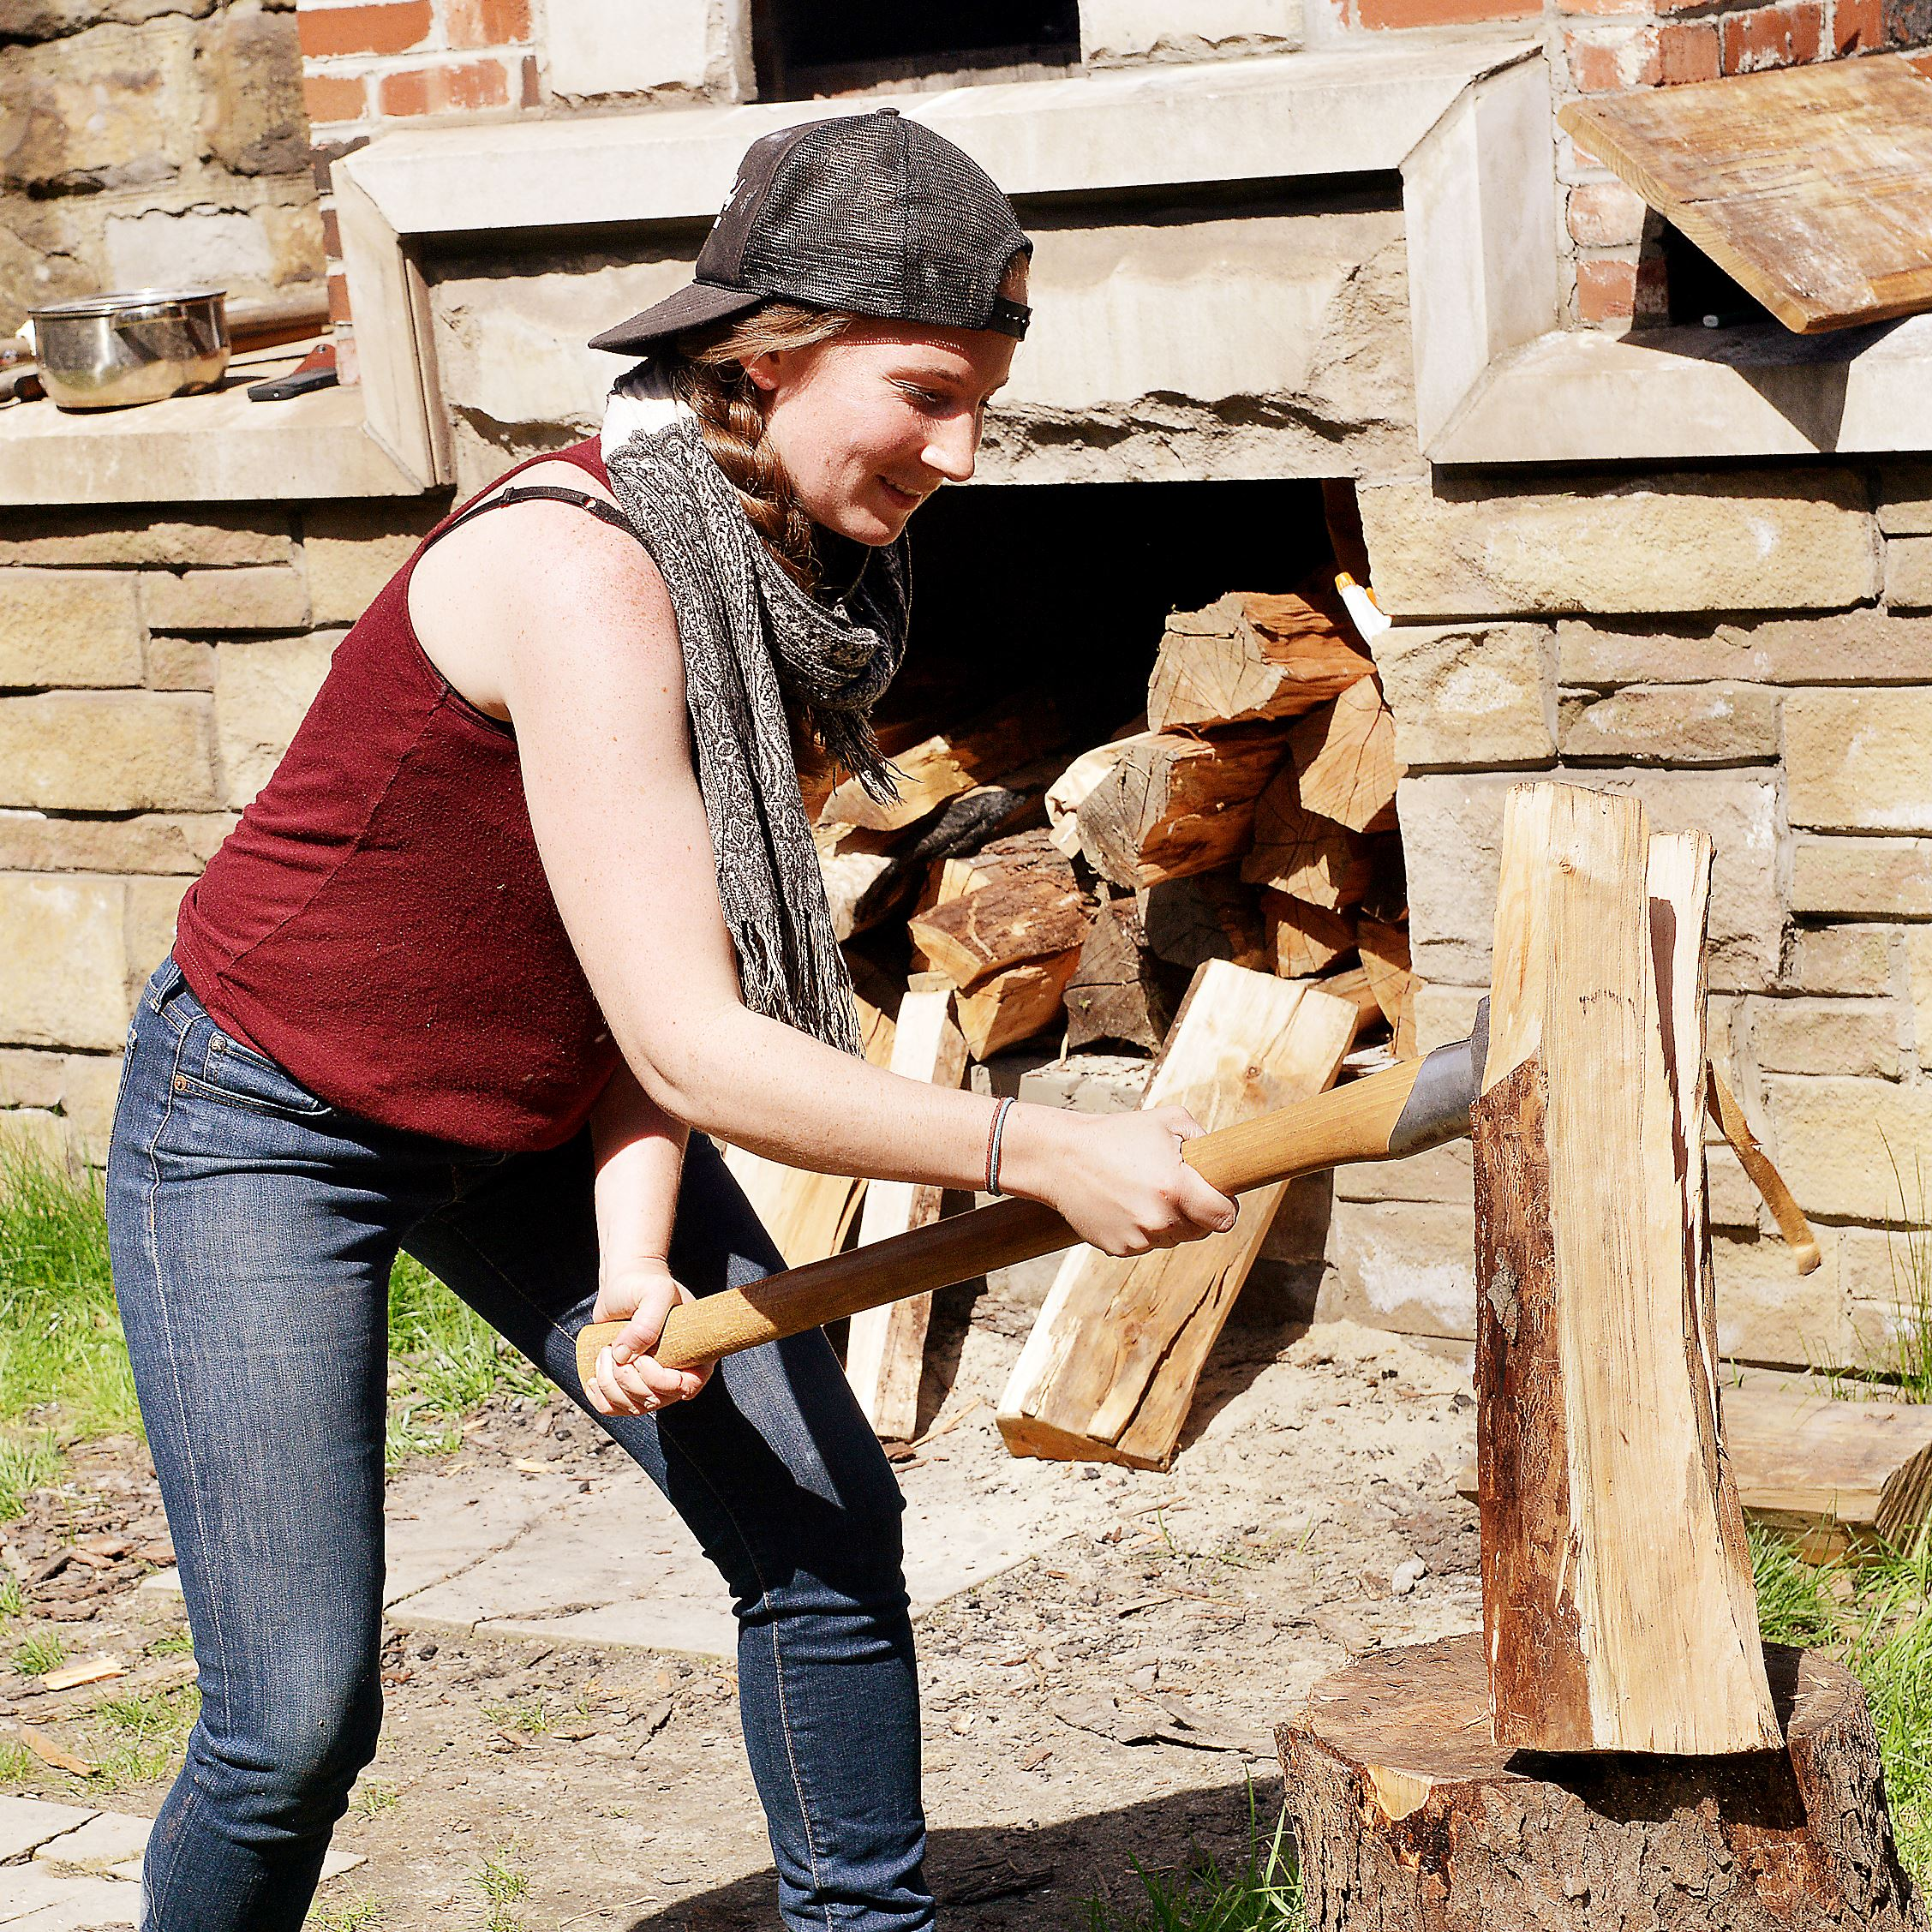 20140506lrchopwoodstandalone02 Shauna Kearns, 25, a student in Chatham University's food studies program, chops wood at the Braddock community brick oven to feed the fire for her sourdough bread.